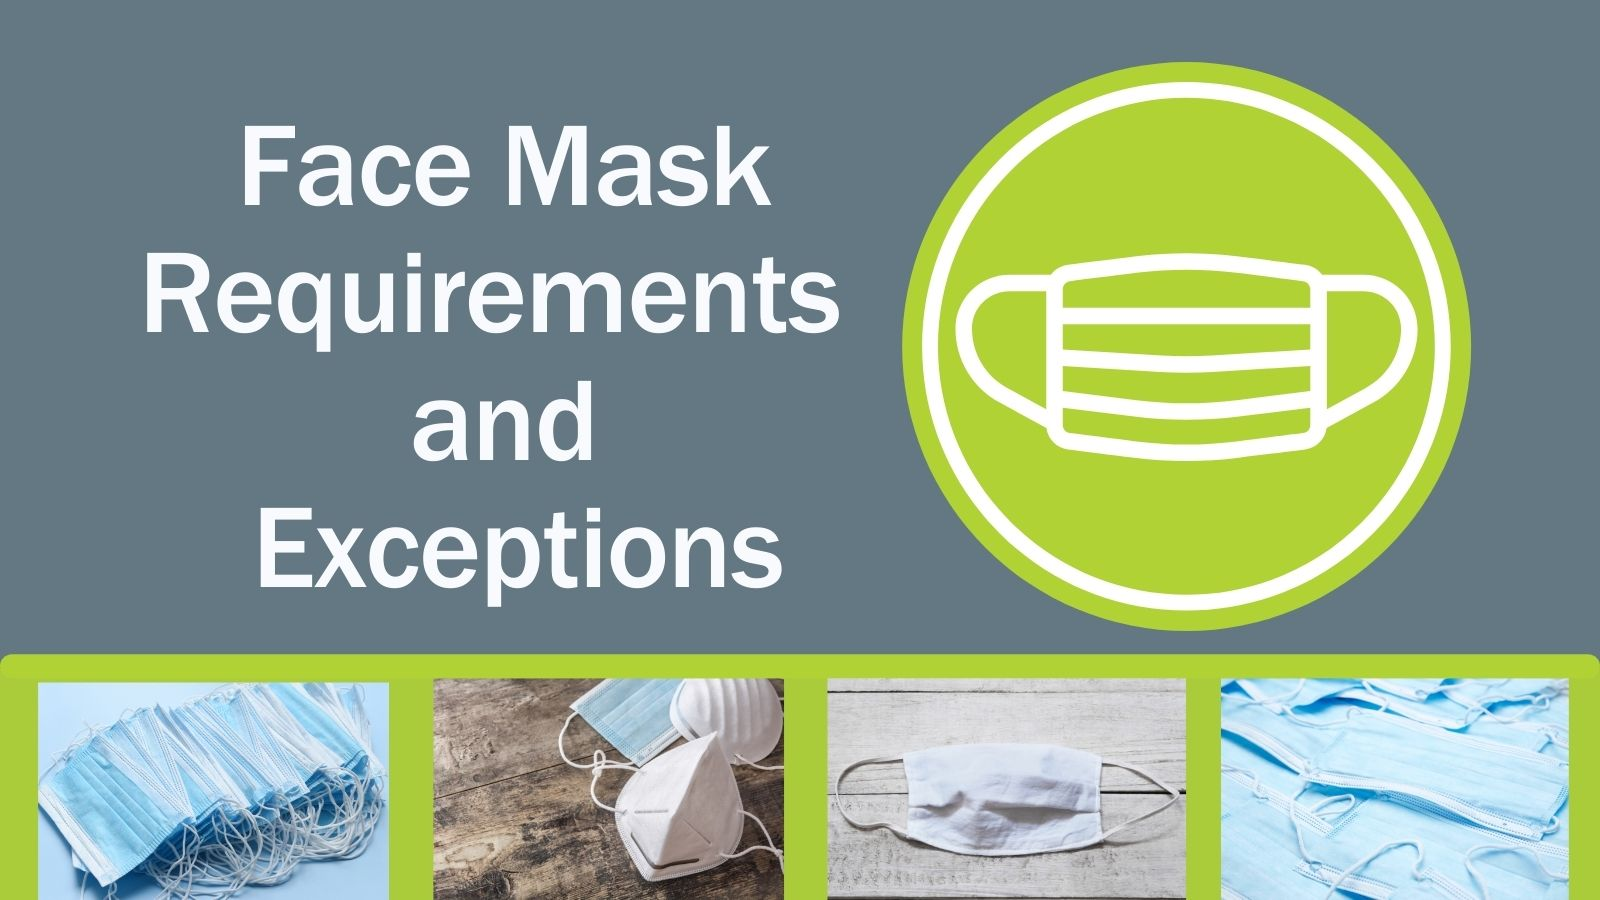 Face mask requirements and exceptions